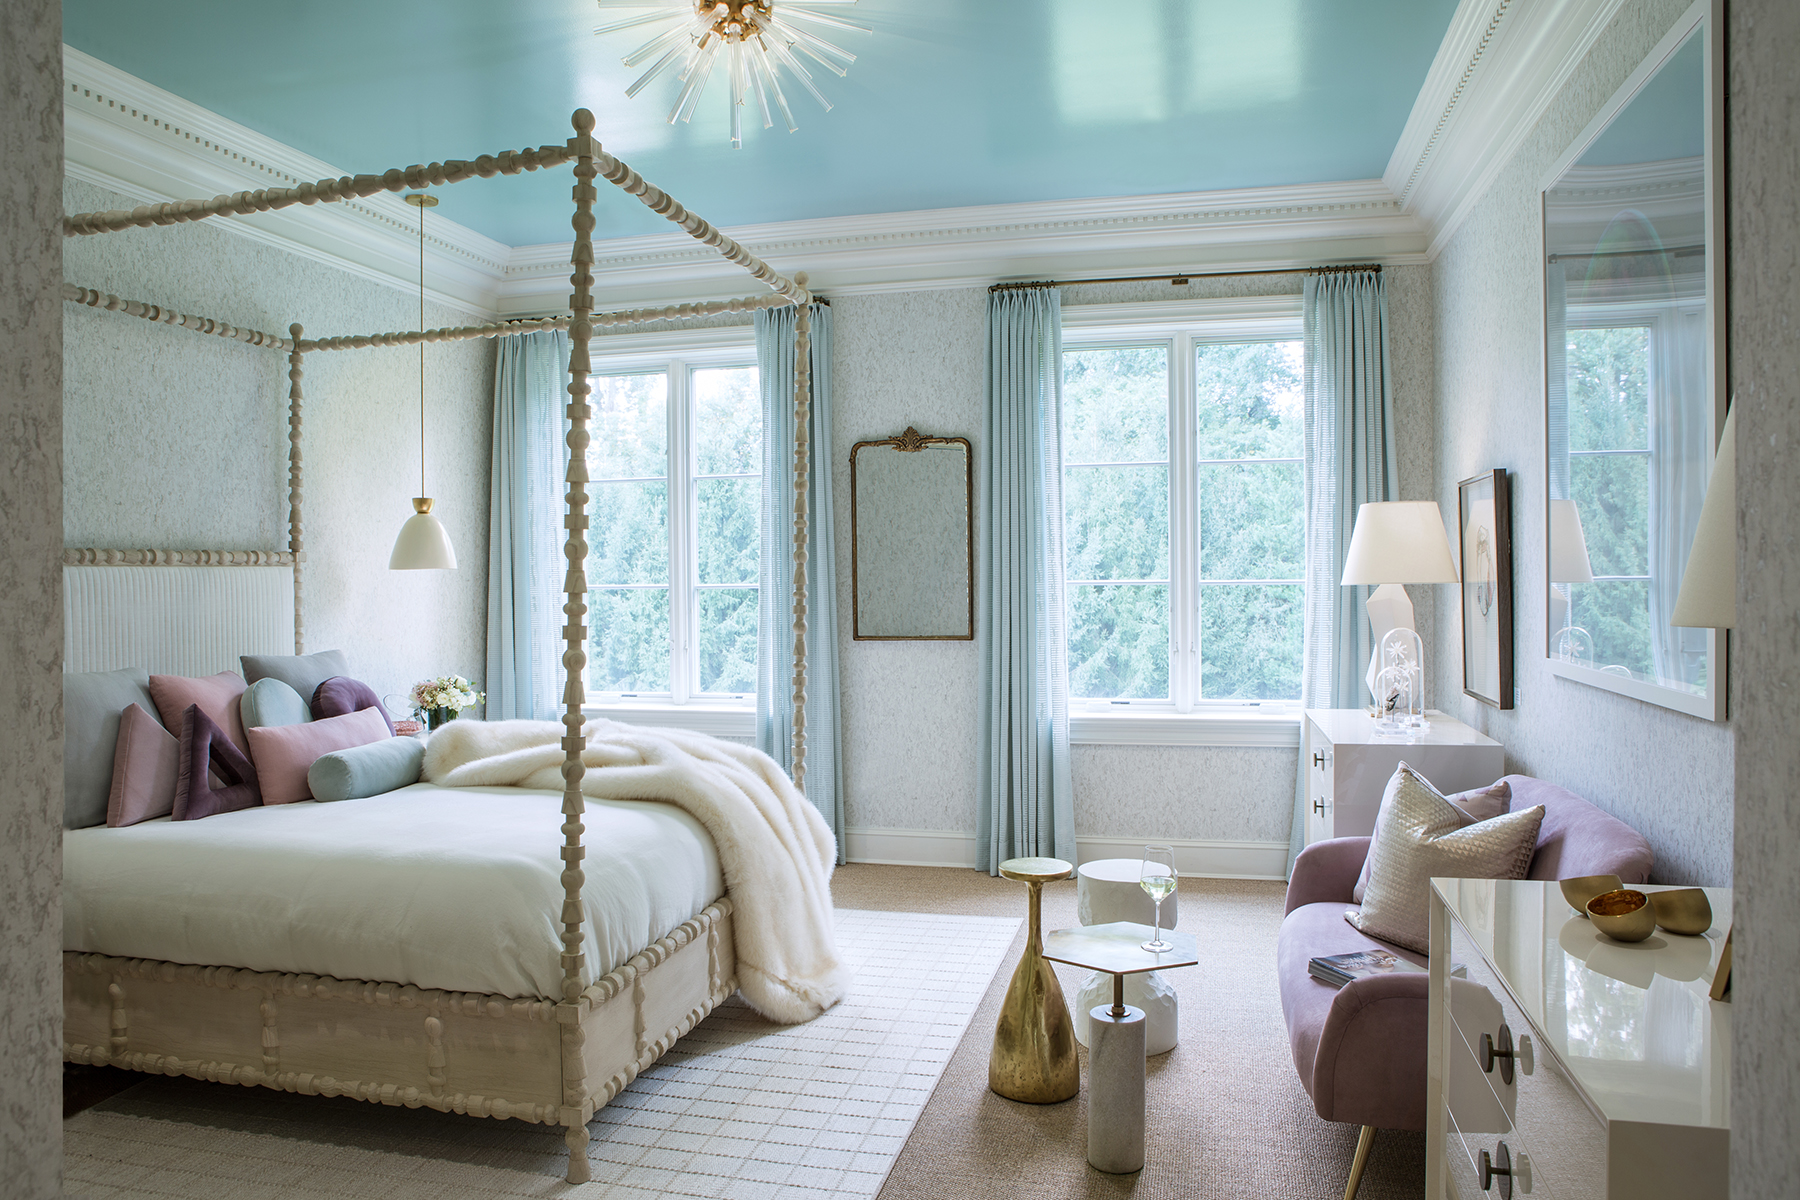 Blue lacquered ceiling in bedroom reflects light